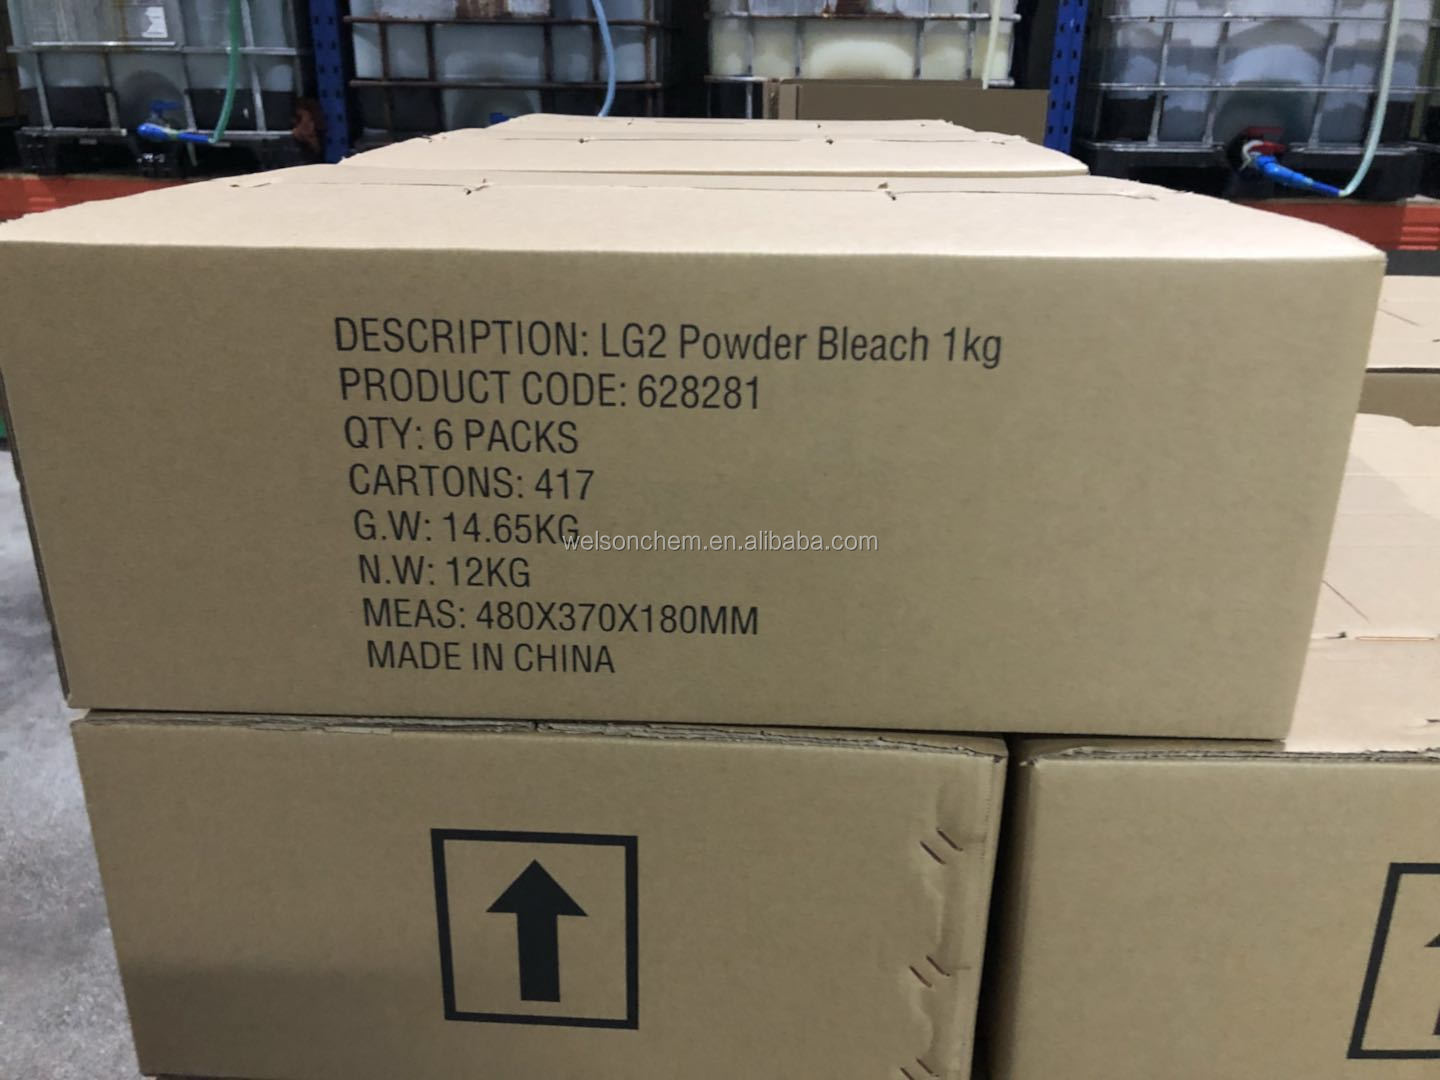 1kg Laundry bleach powder with scoop